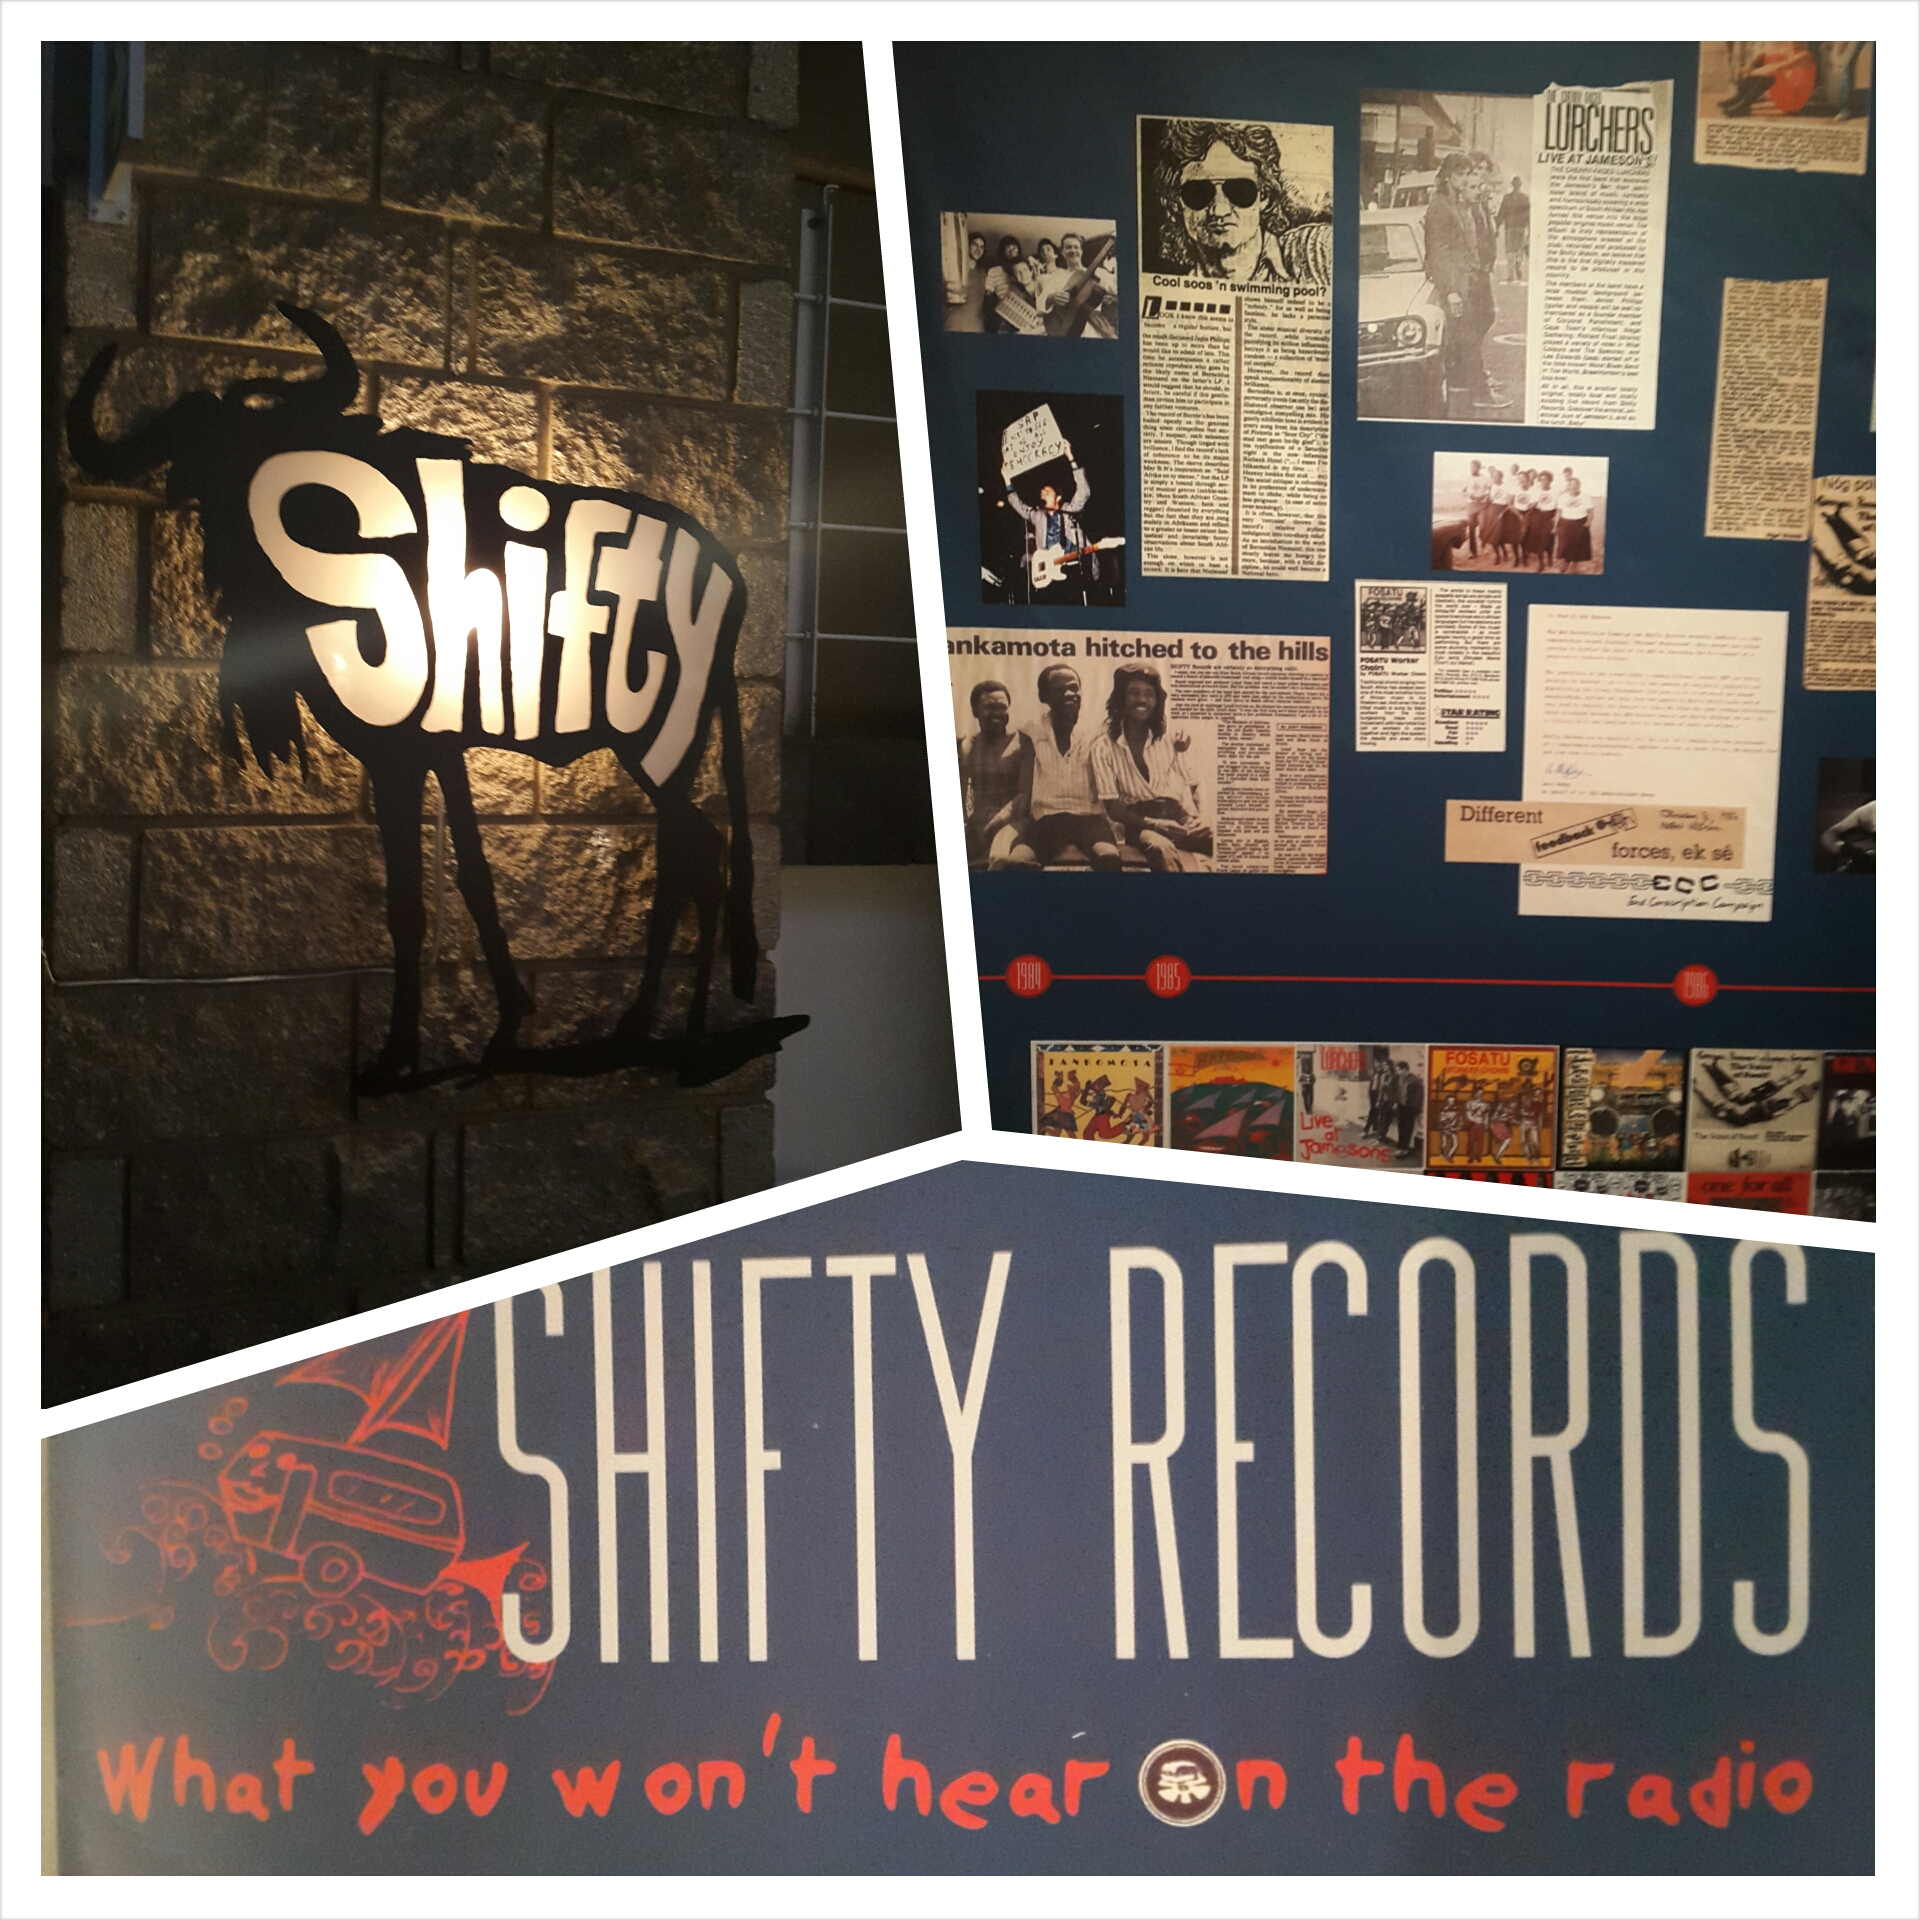 Collage from SAHA's physical exhibition on Shifty Records installed at Alliance Francaise in September 2014